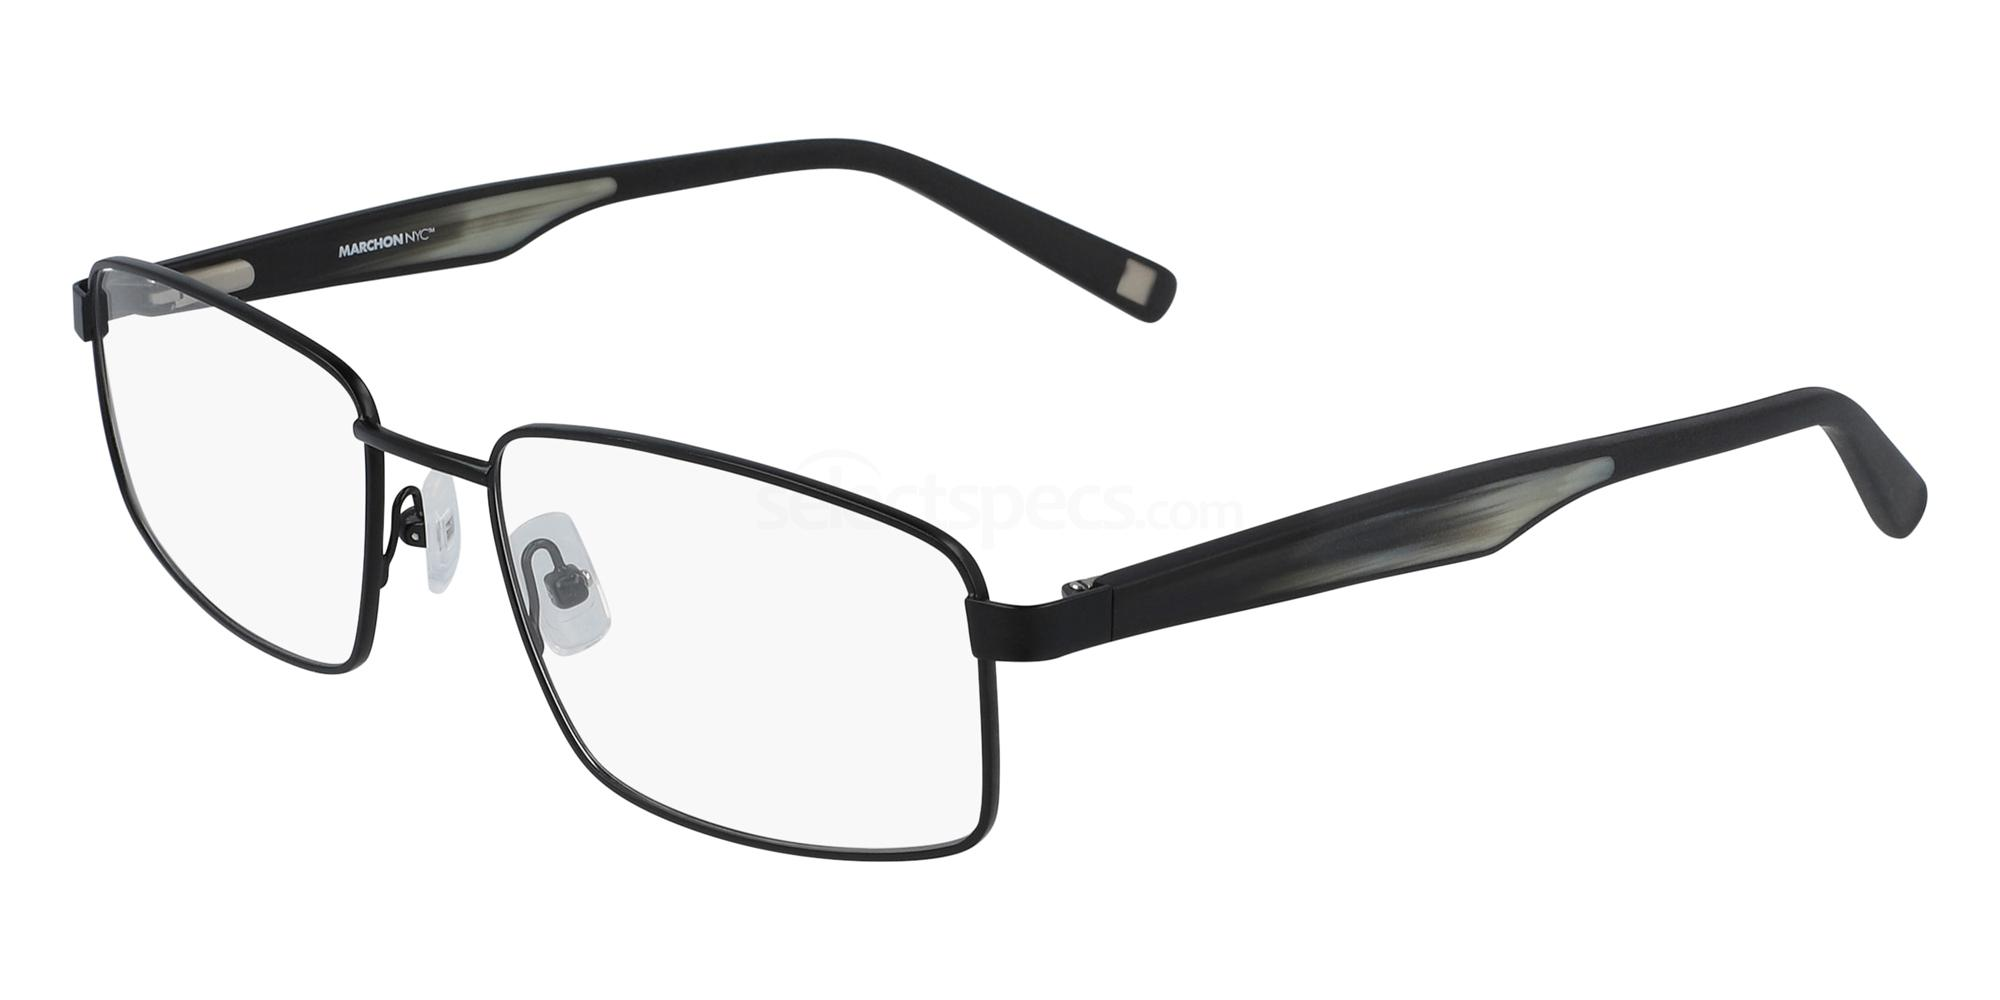 001 M-2012 Glasses, Marchon